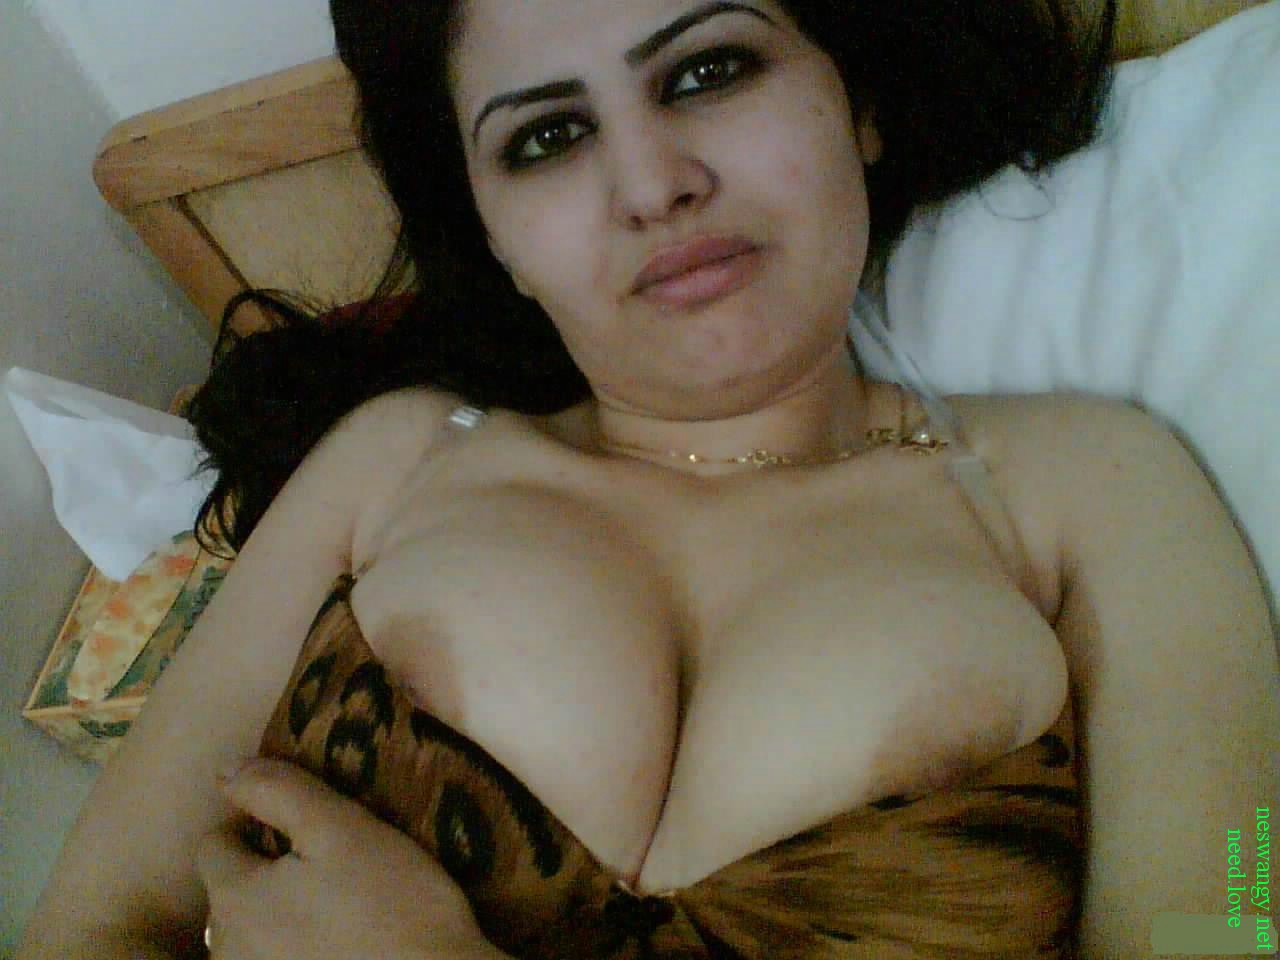 Have Sexy girl nude uae was